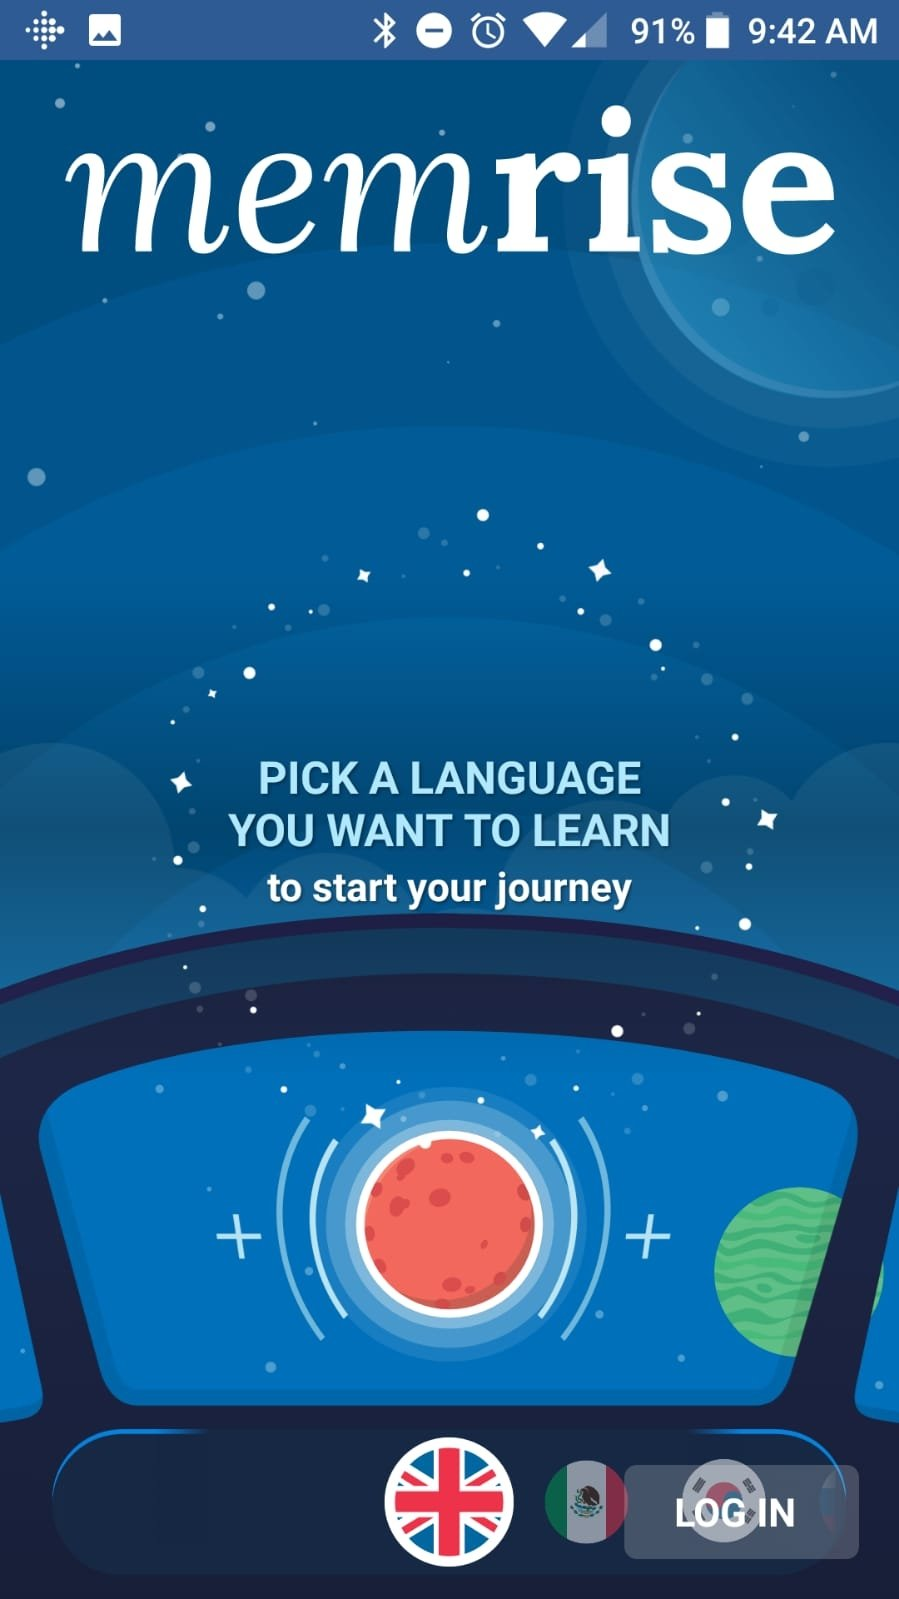 Memrise 2 94_14629 - Download for Android APK Free